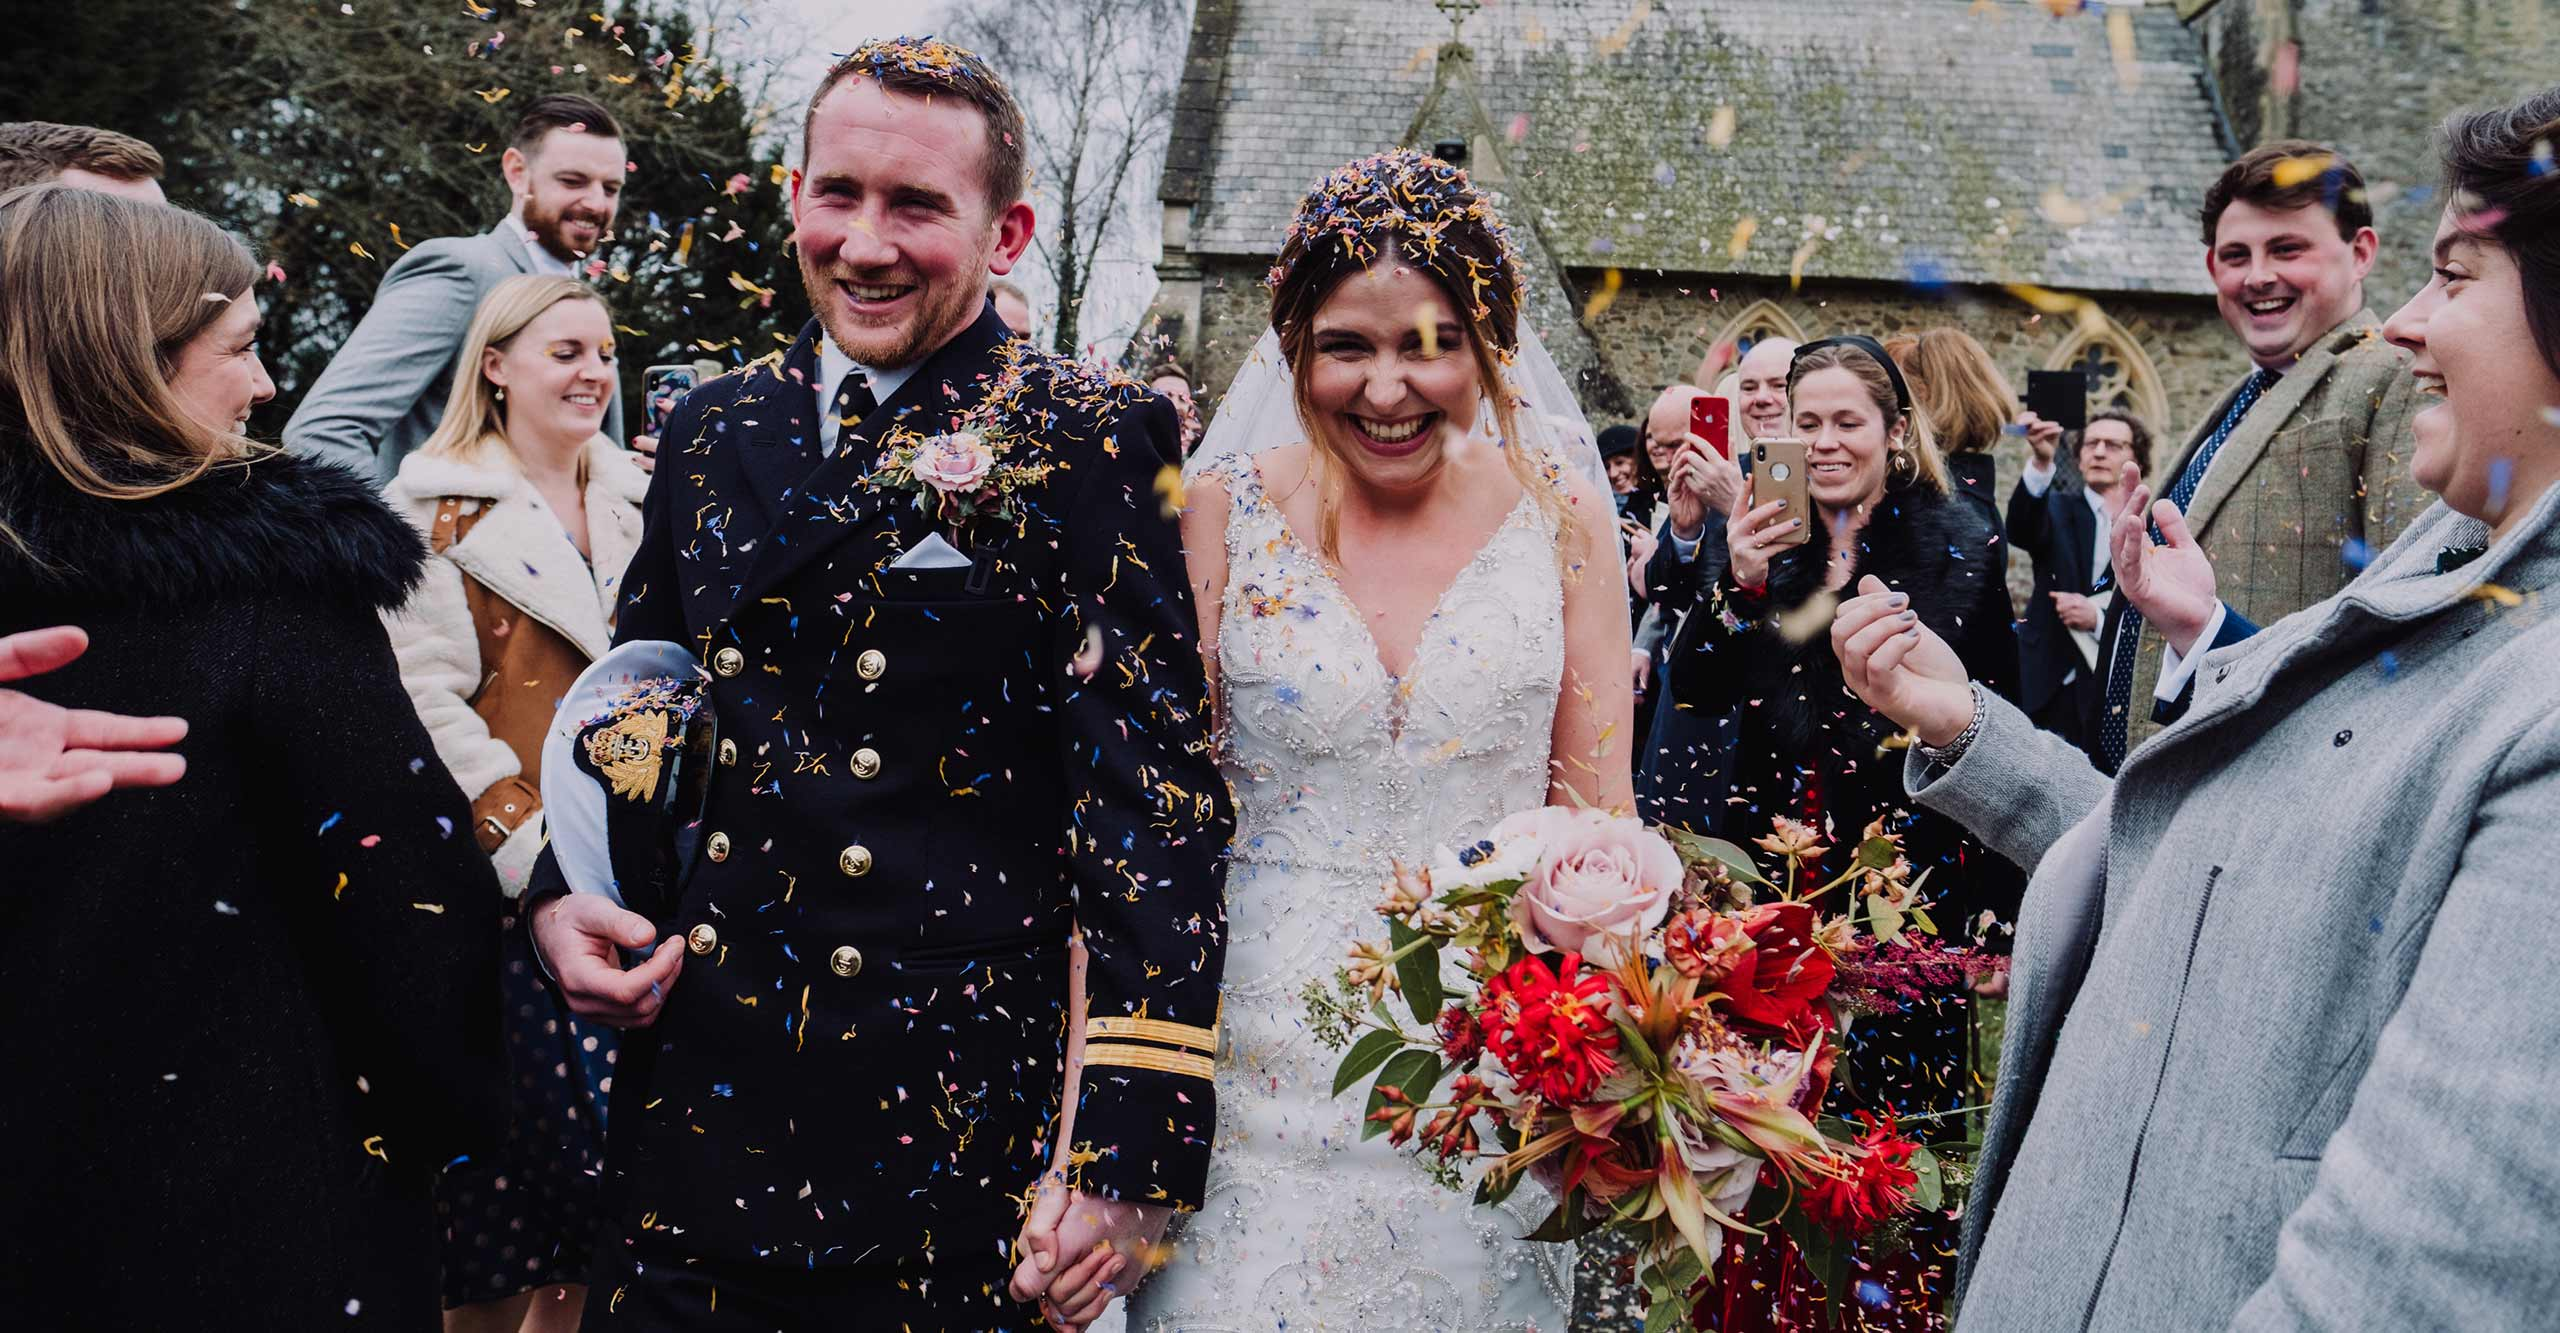 anran wedding, confetti shower, devon wedding photographer